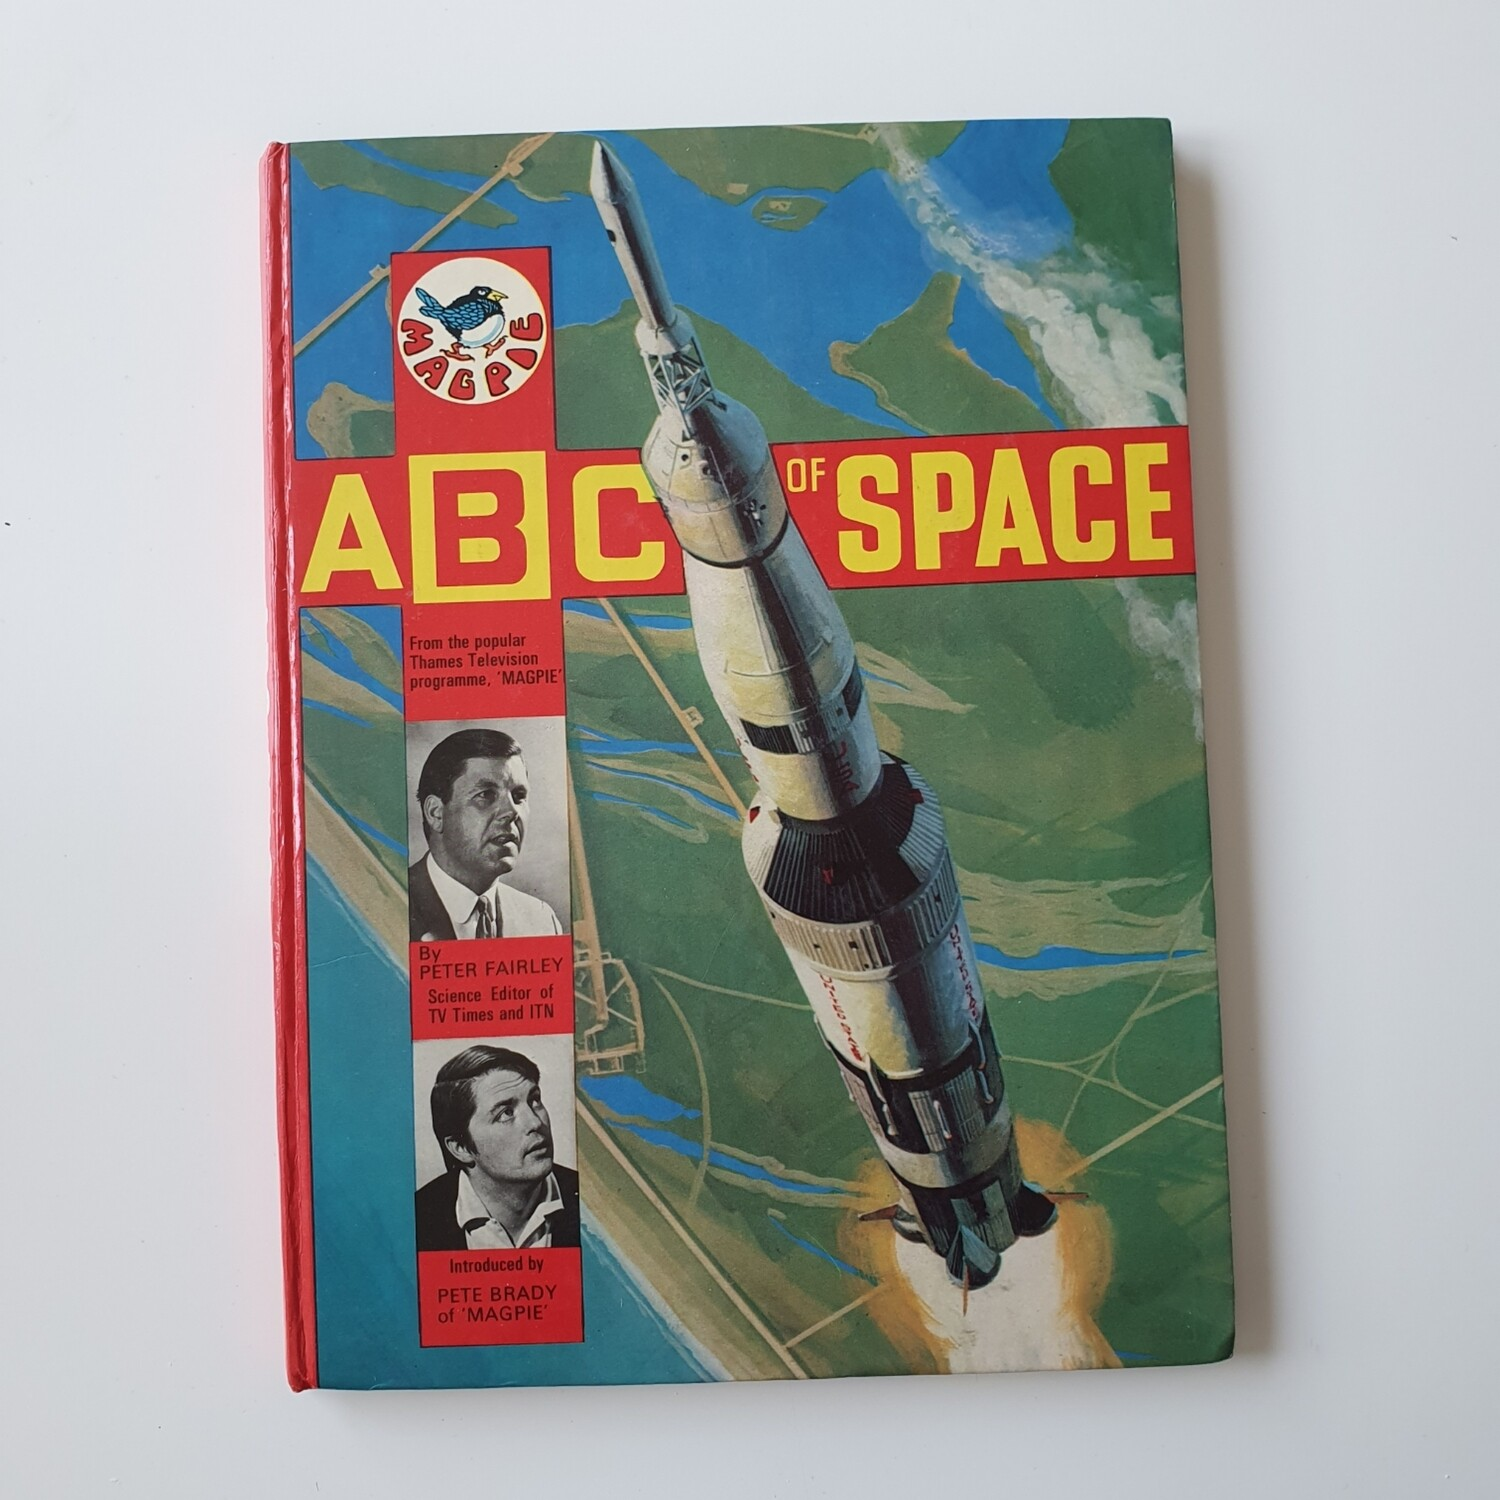 ABC of Space